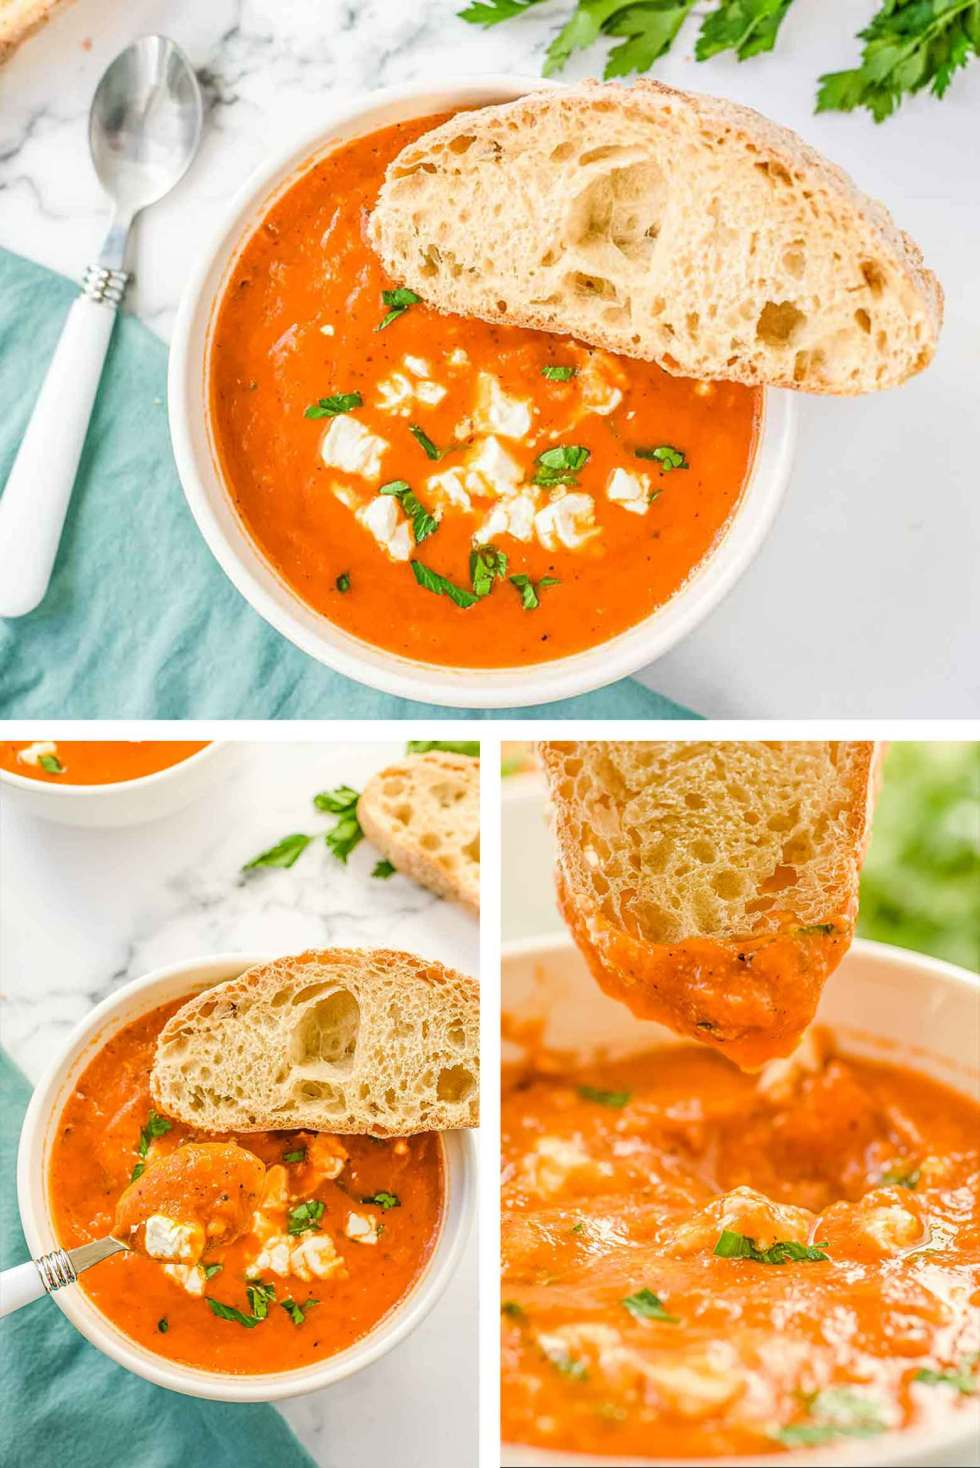 Roasted red pepper tomato soup is a warm, healthy, and hearty meal on a cold winter's night. Roasted red peppers and lentils loaded with protein, vitamins and minerals will leave your body happy, while the taste will leave your taste buds happy. Made in an Instant Pot or another pressure cooker, it's ready to go in just 30 minutes. Puree it to make it a bisque or leave chunky- the choice is yours! via @mrsmajorhoff